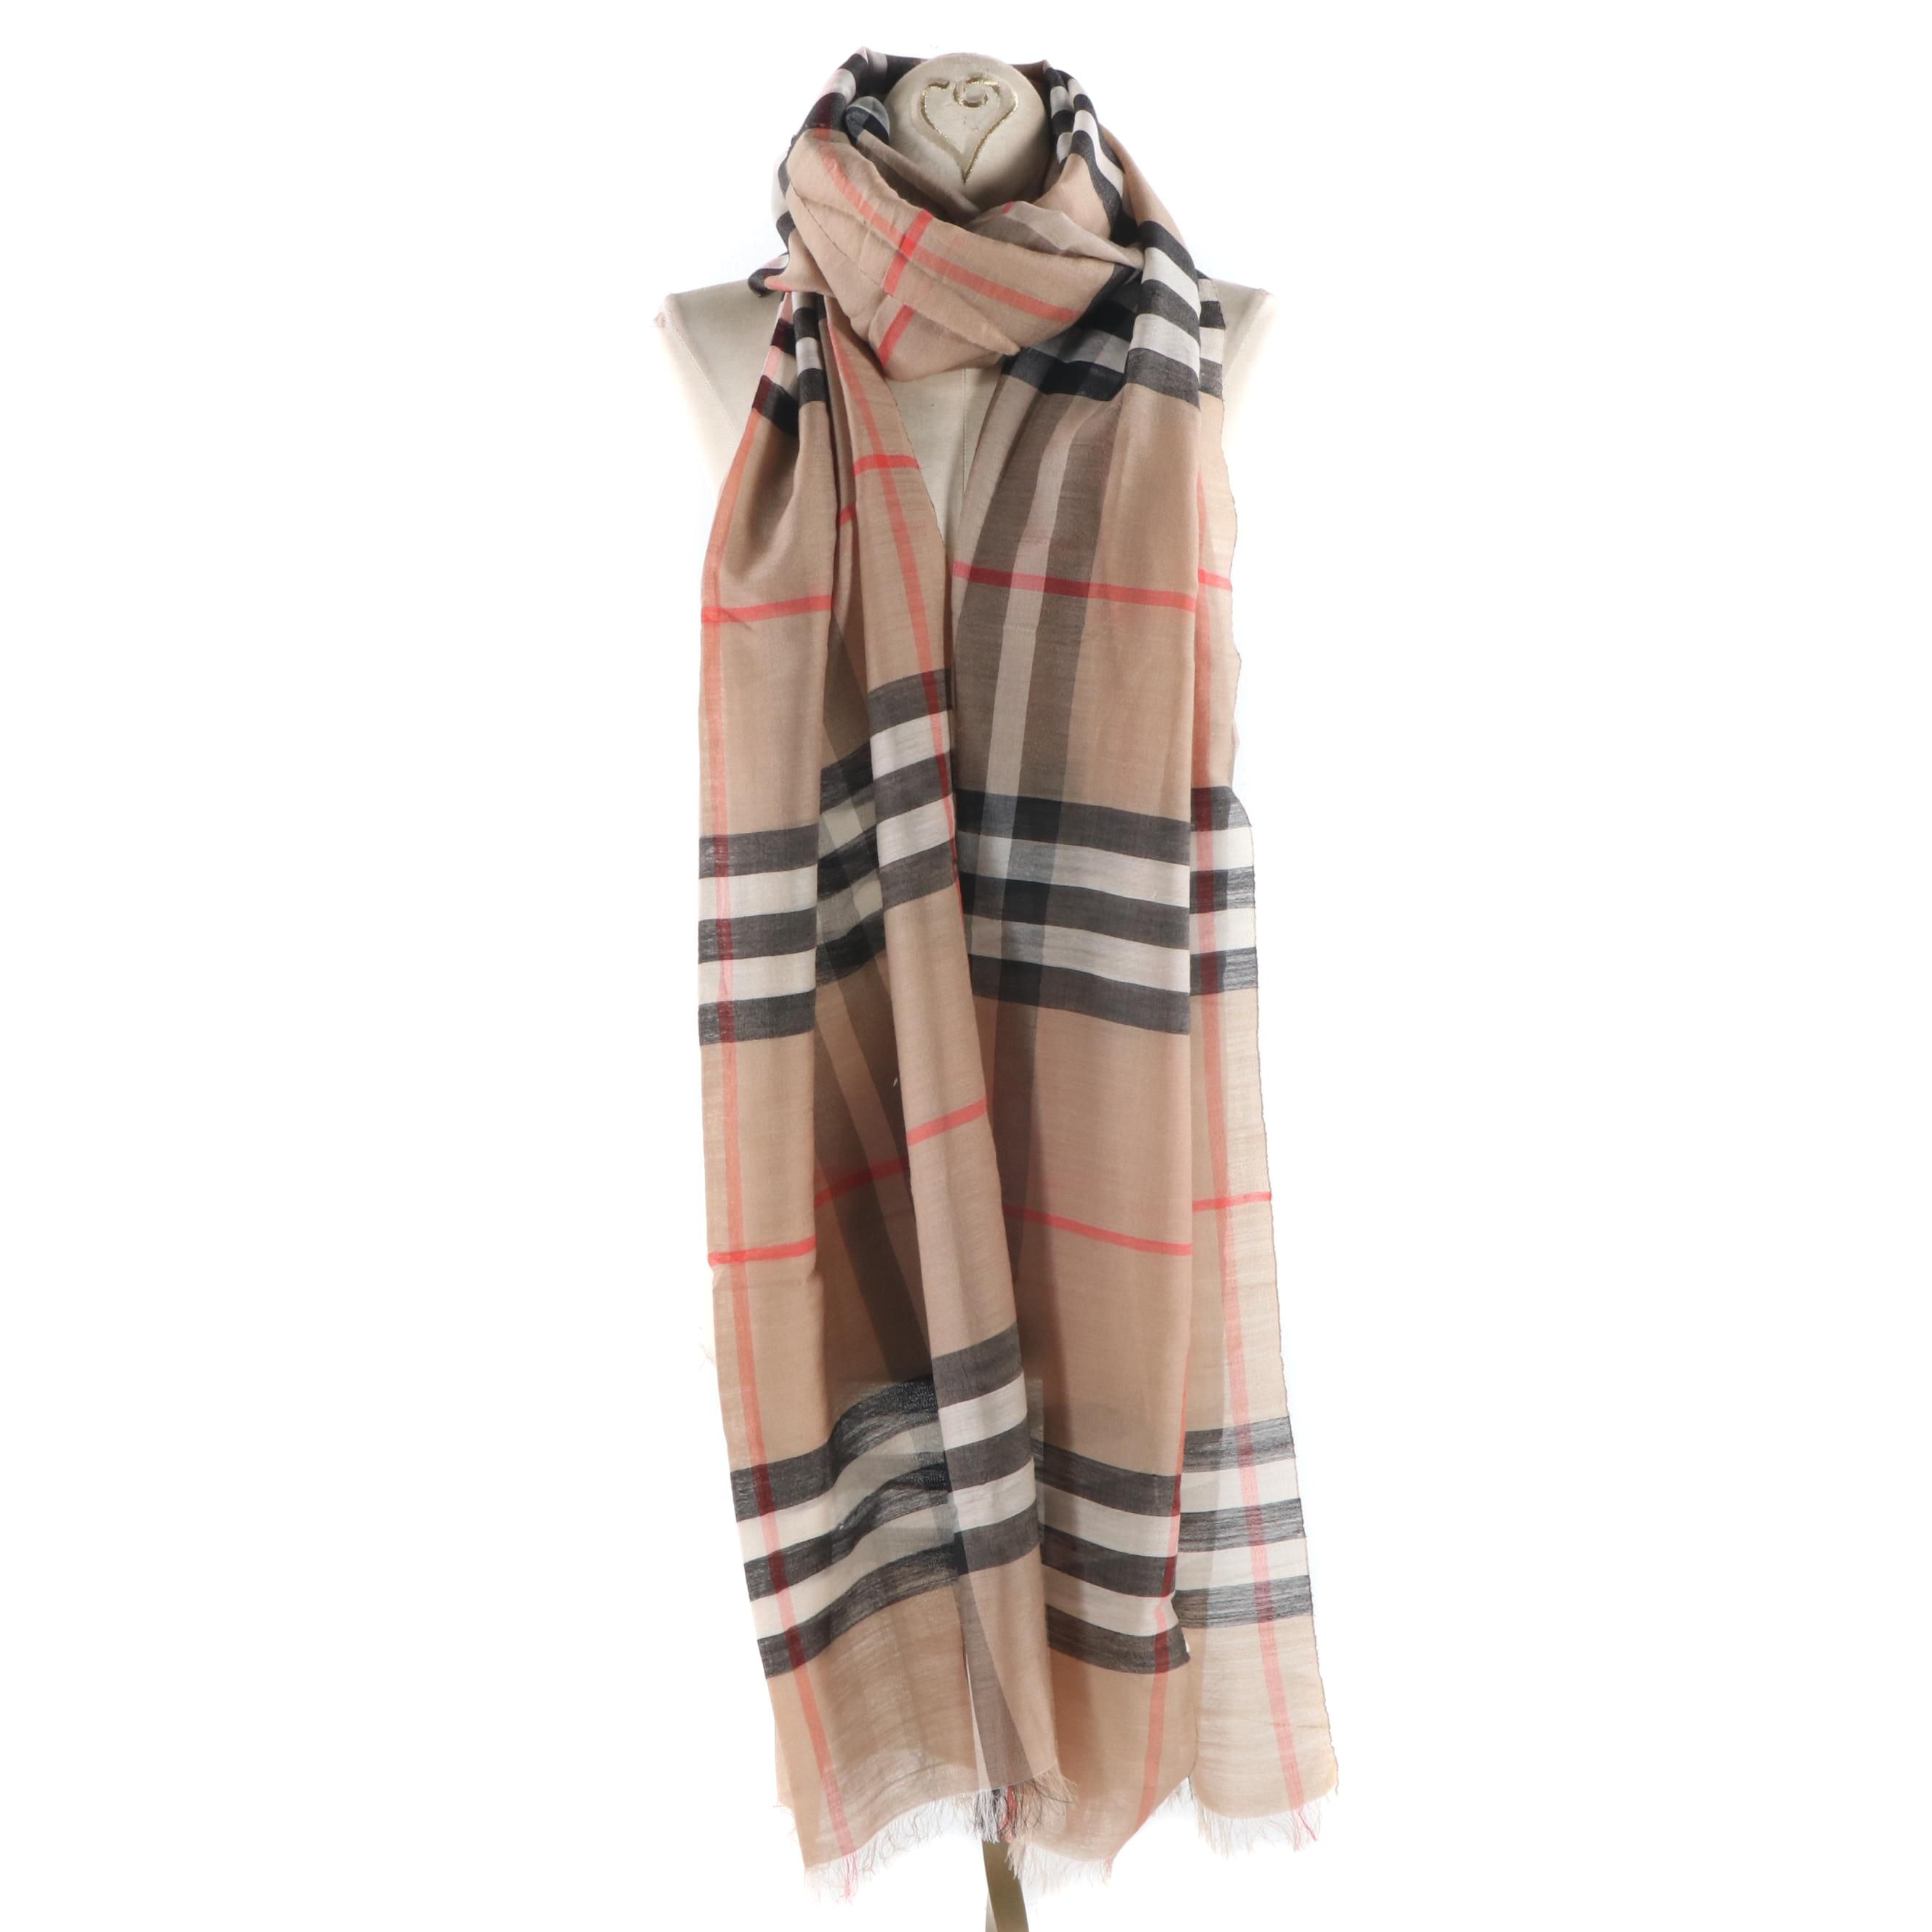 Burberry Wool and Silk Blend Plaid Scarf